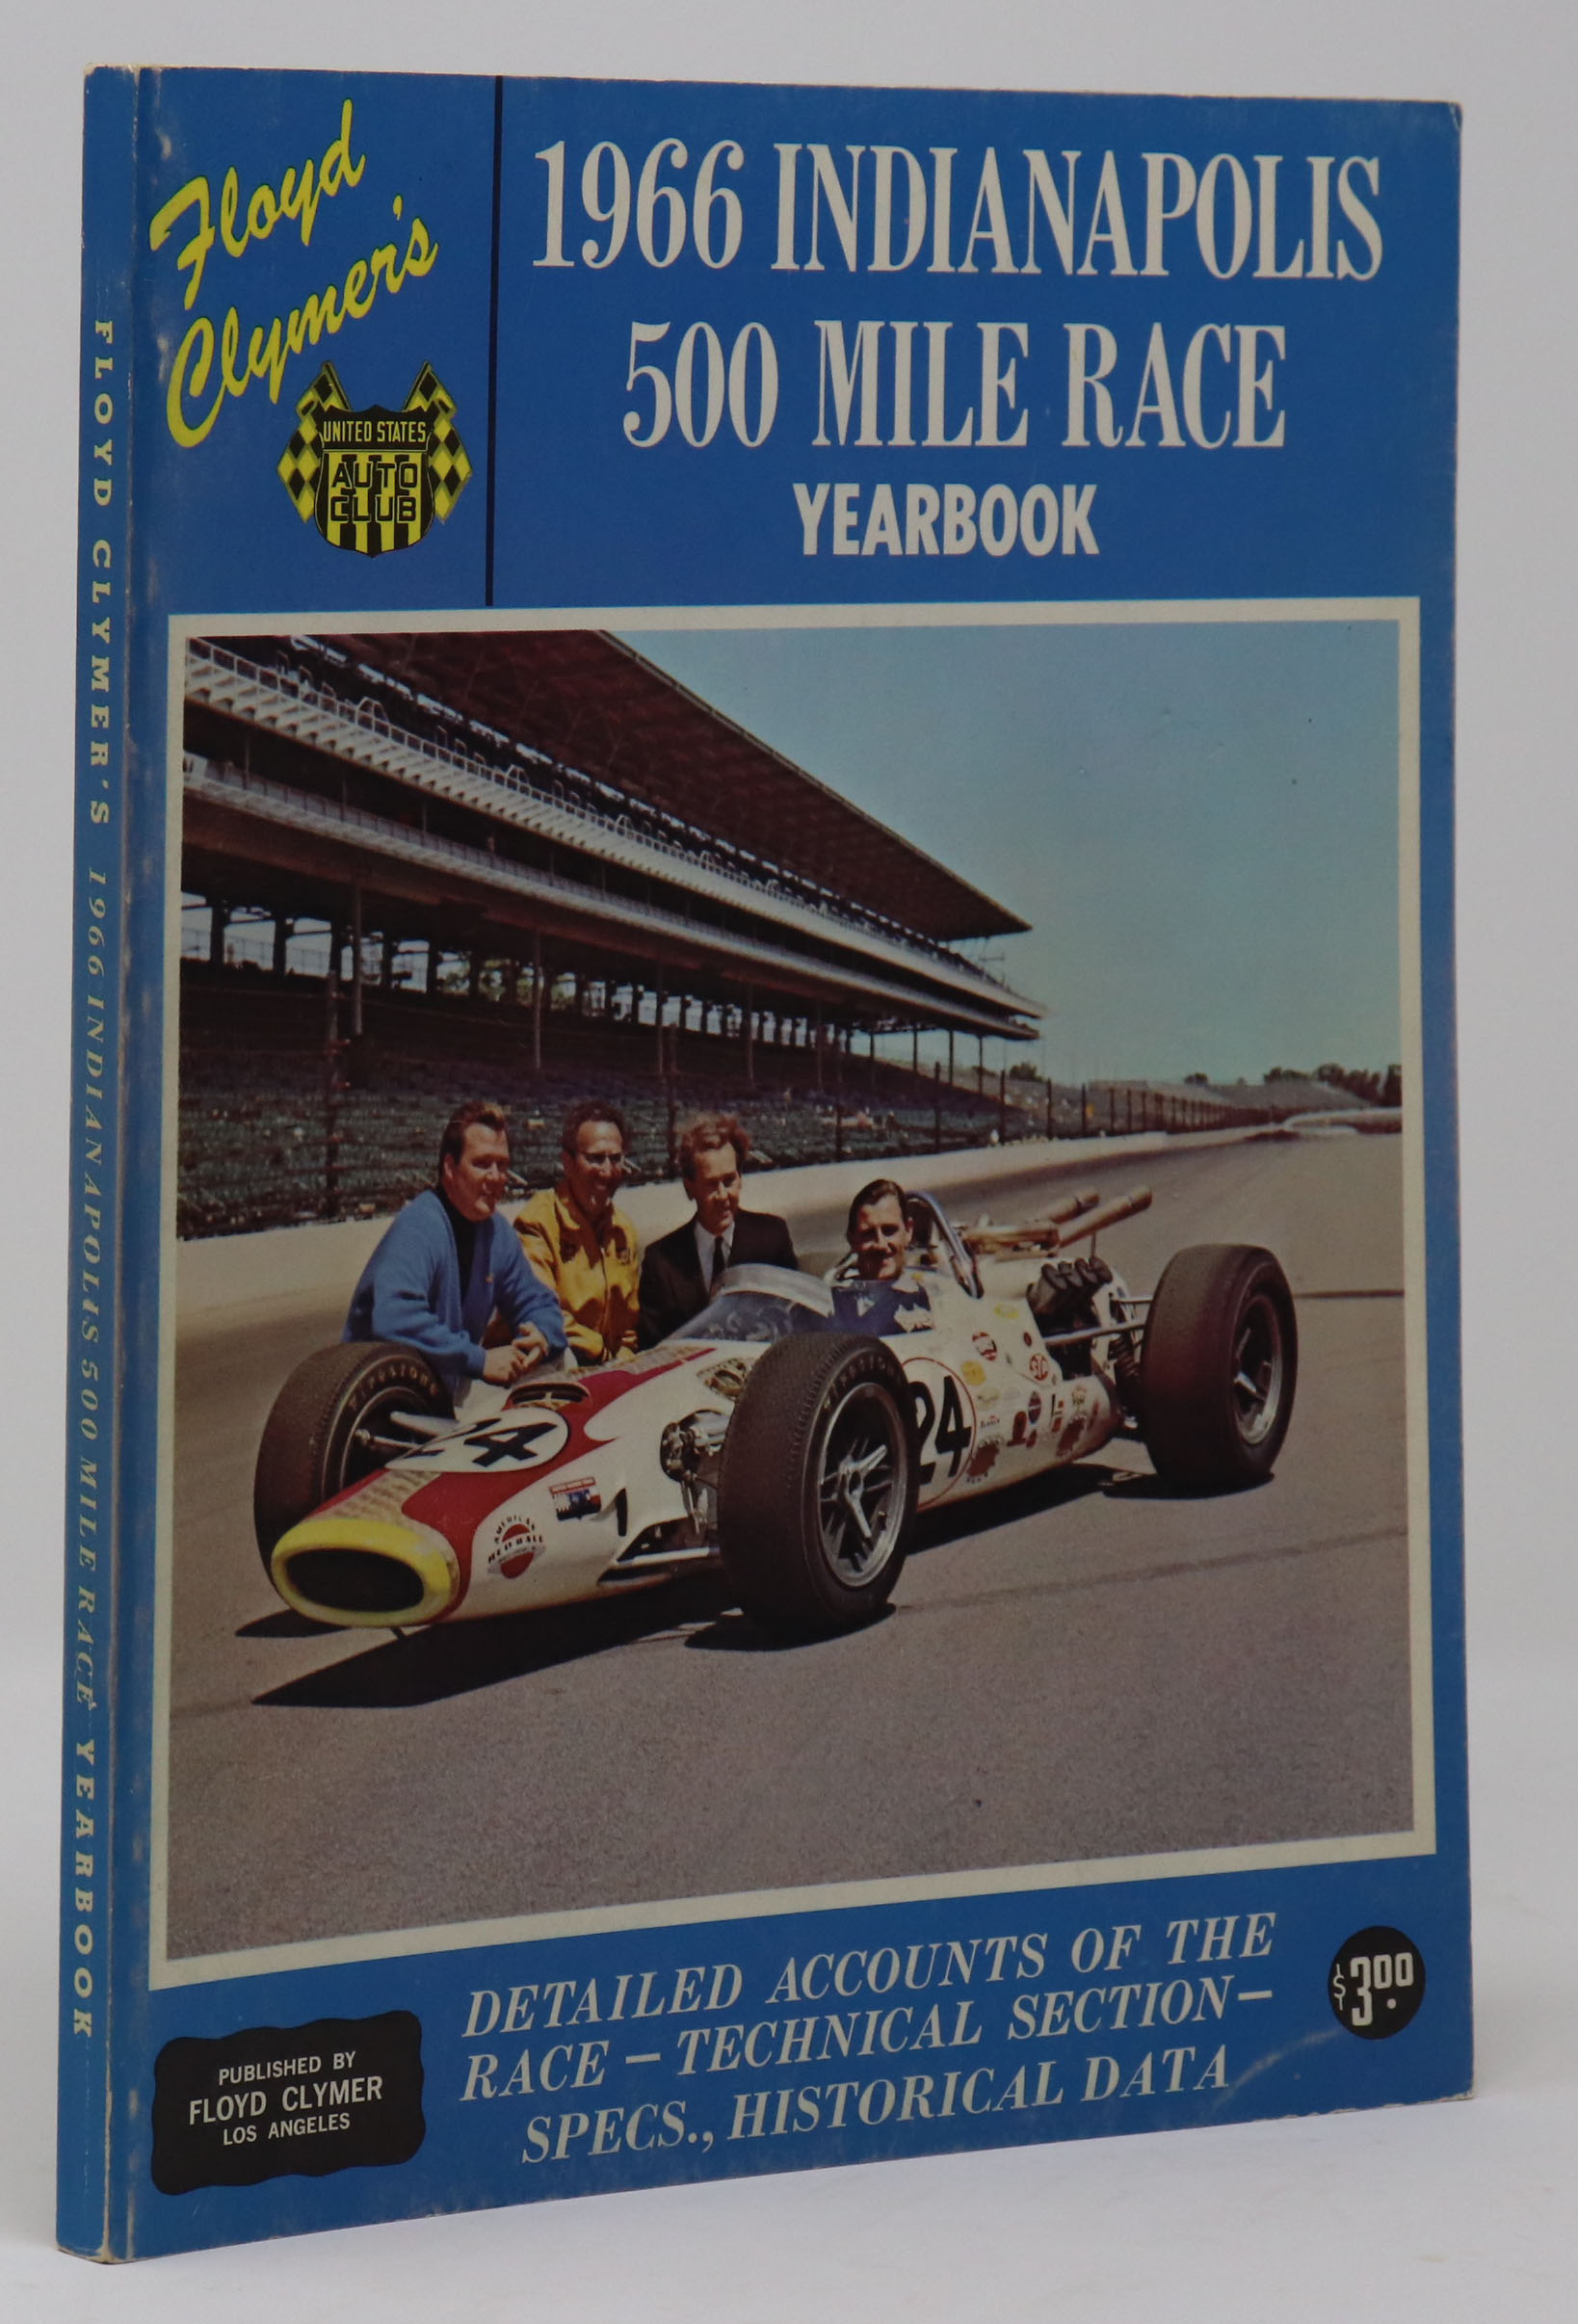 Image for 1966 Indianapolis 500 Mile Race Yearbook.